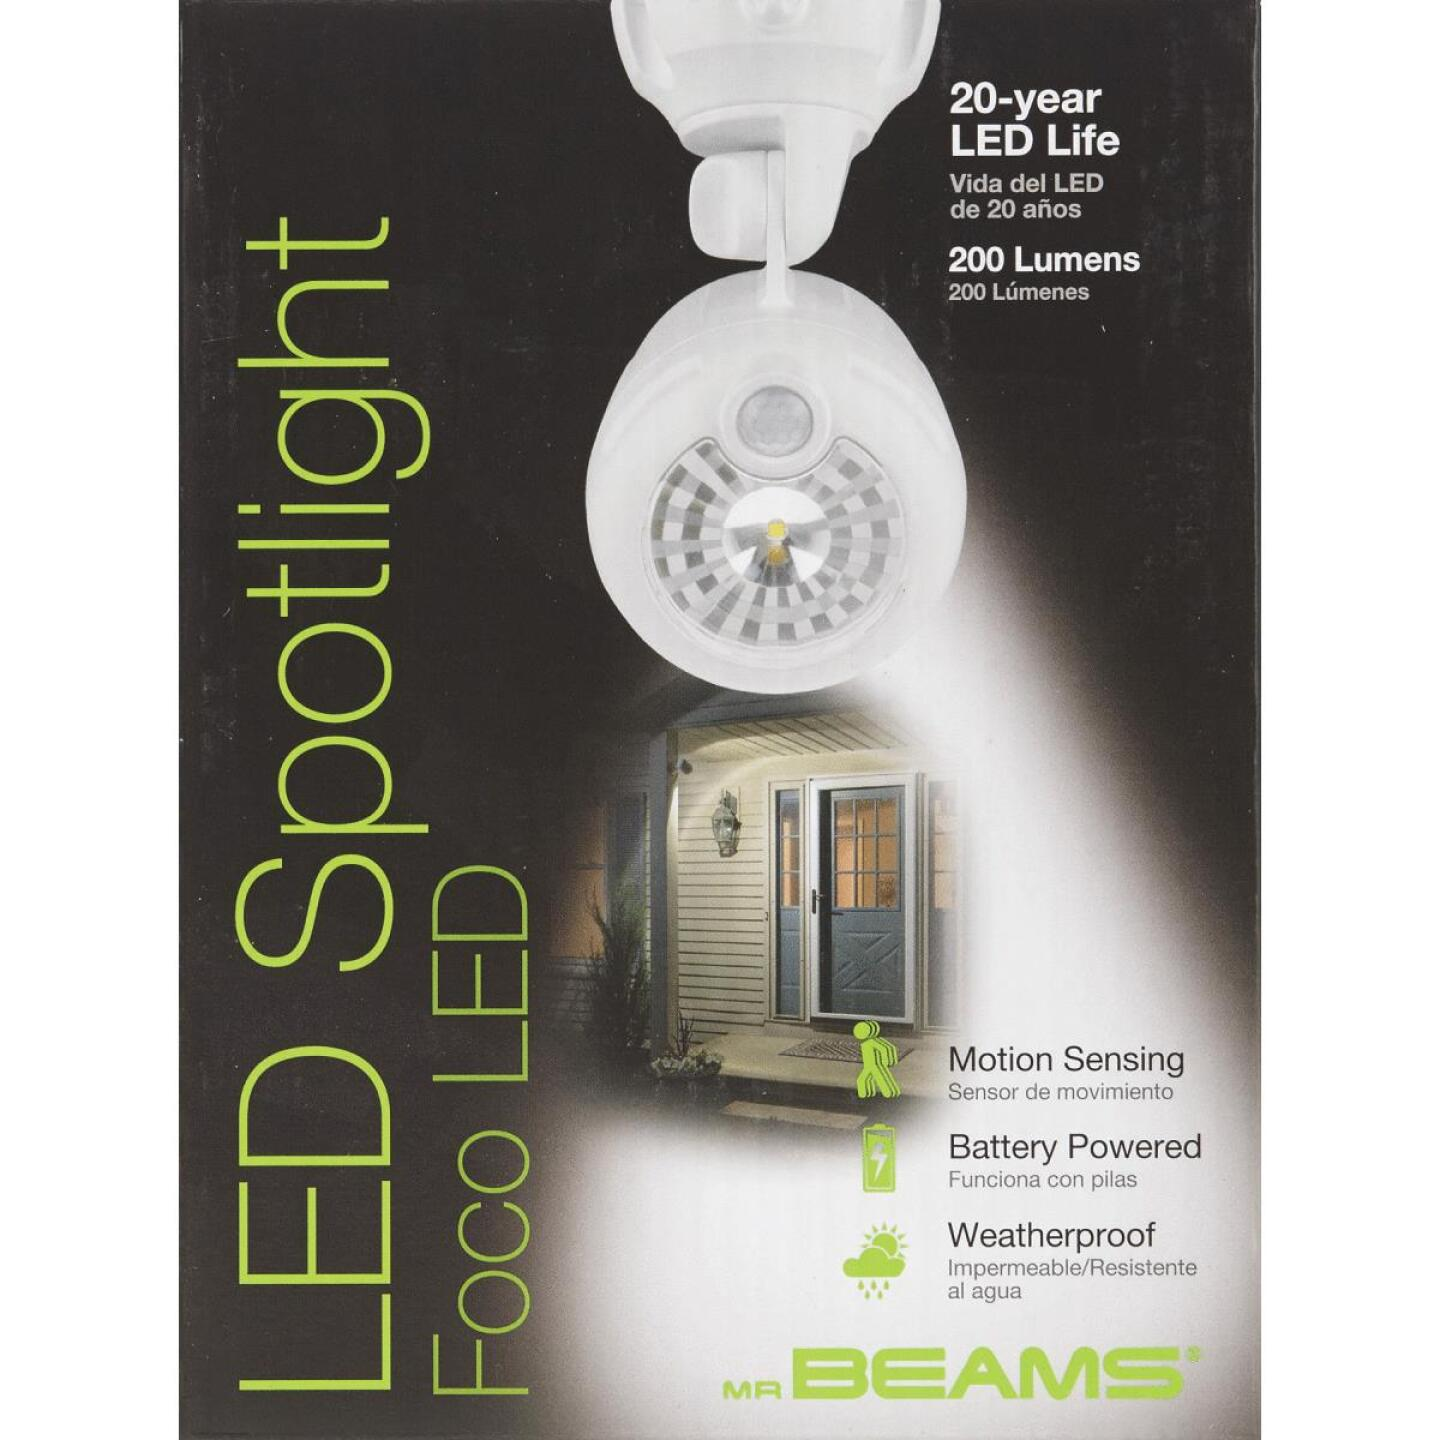 Mr. Beams XT 200-Lumen White Motion Sensing/Dusk-To-Dawn Spotlight Outdoor Battery Operated LED Light Fixture Image 2